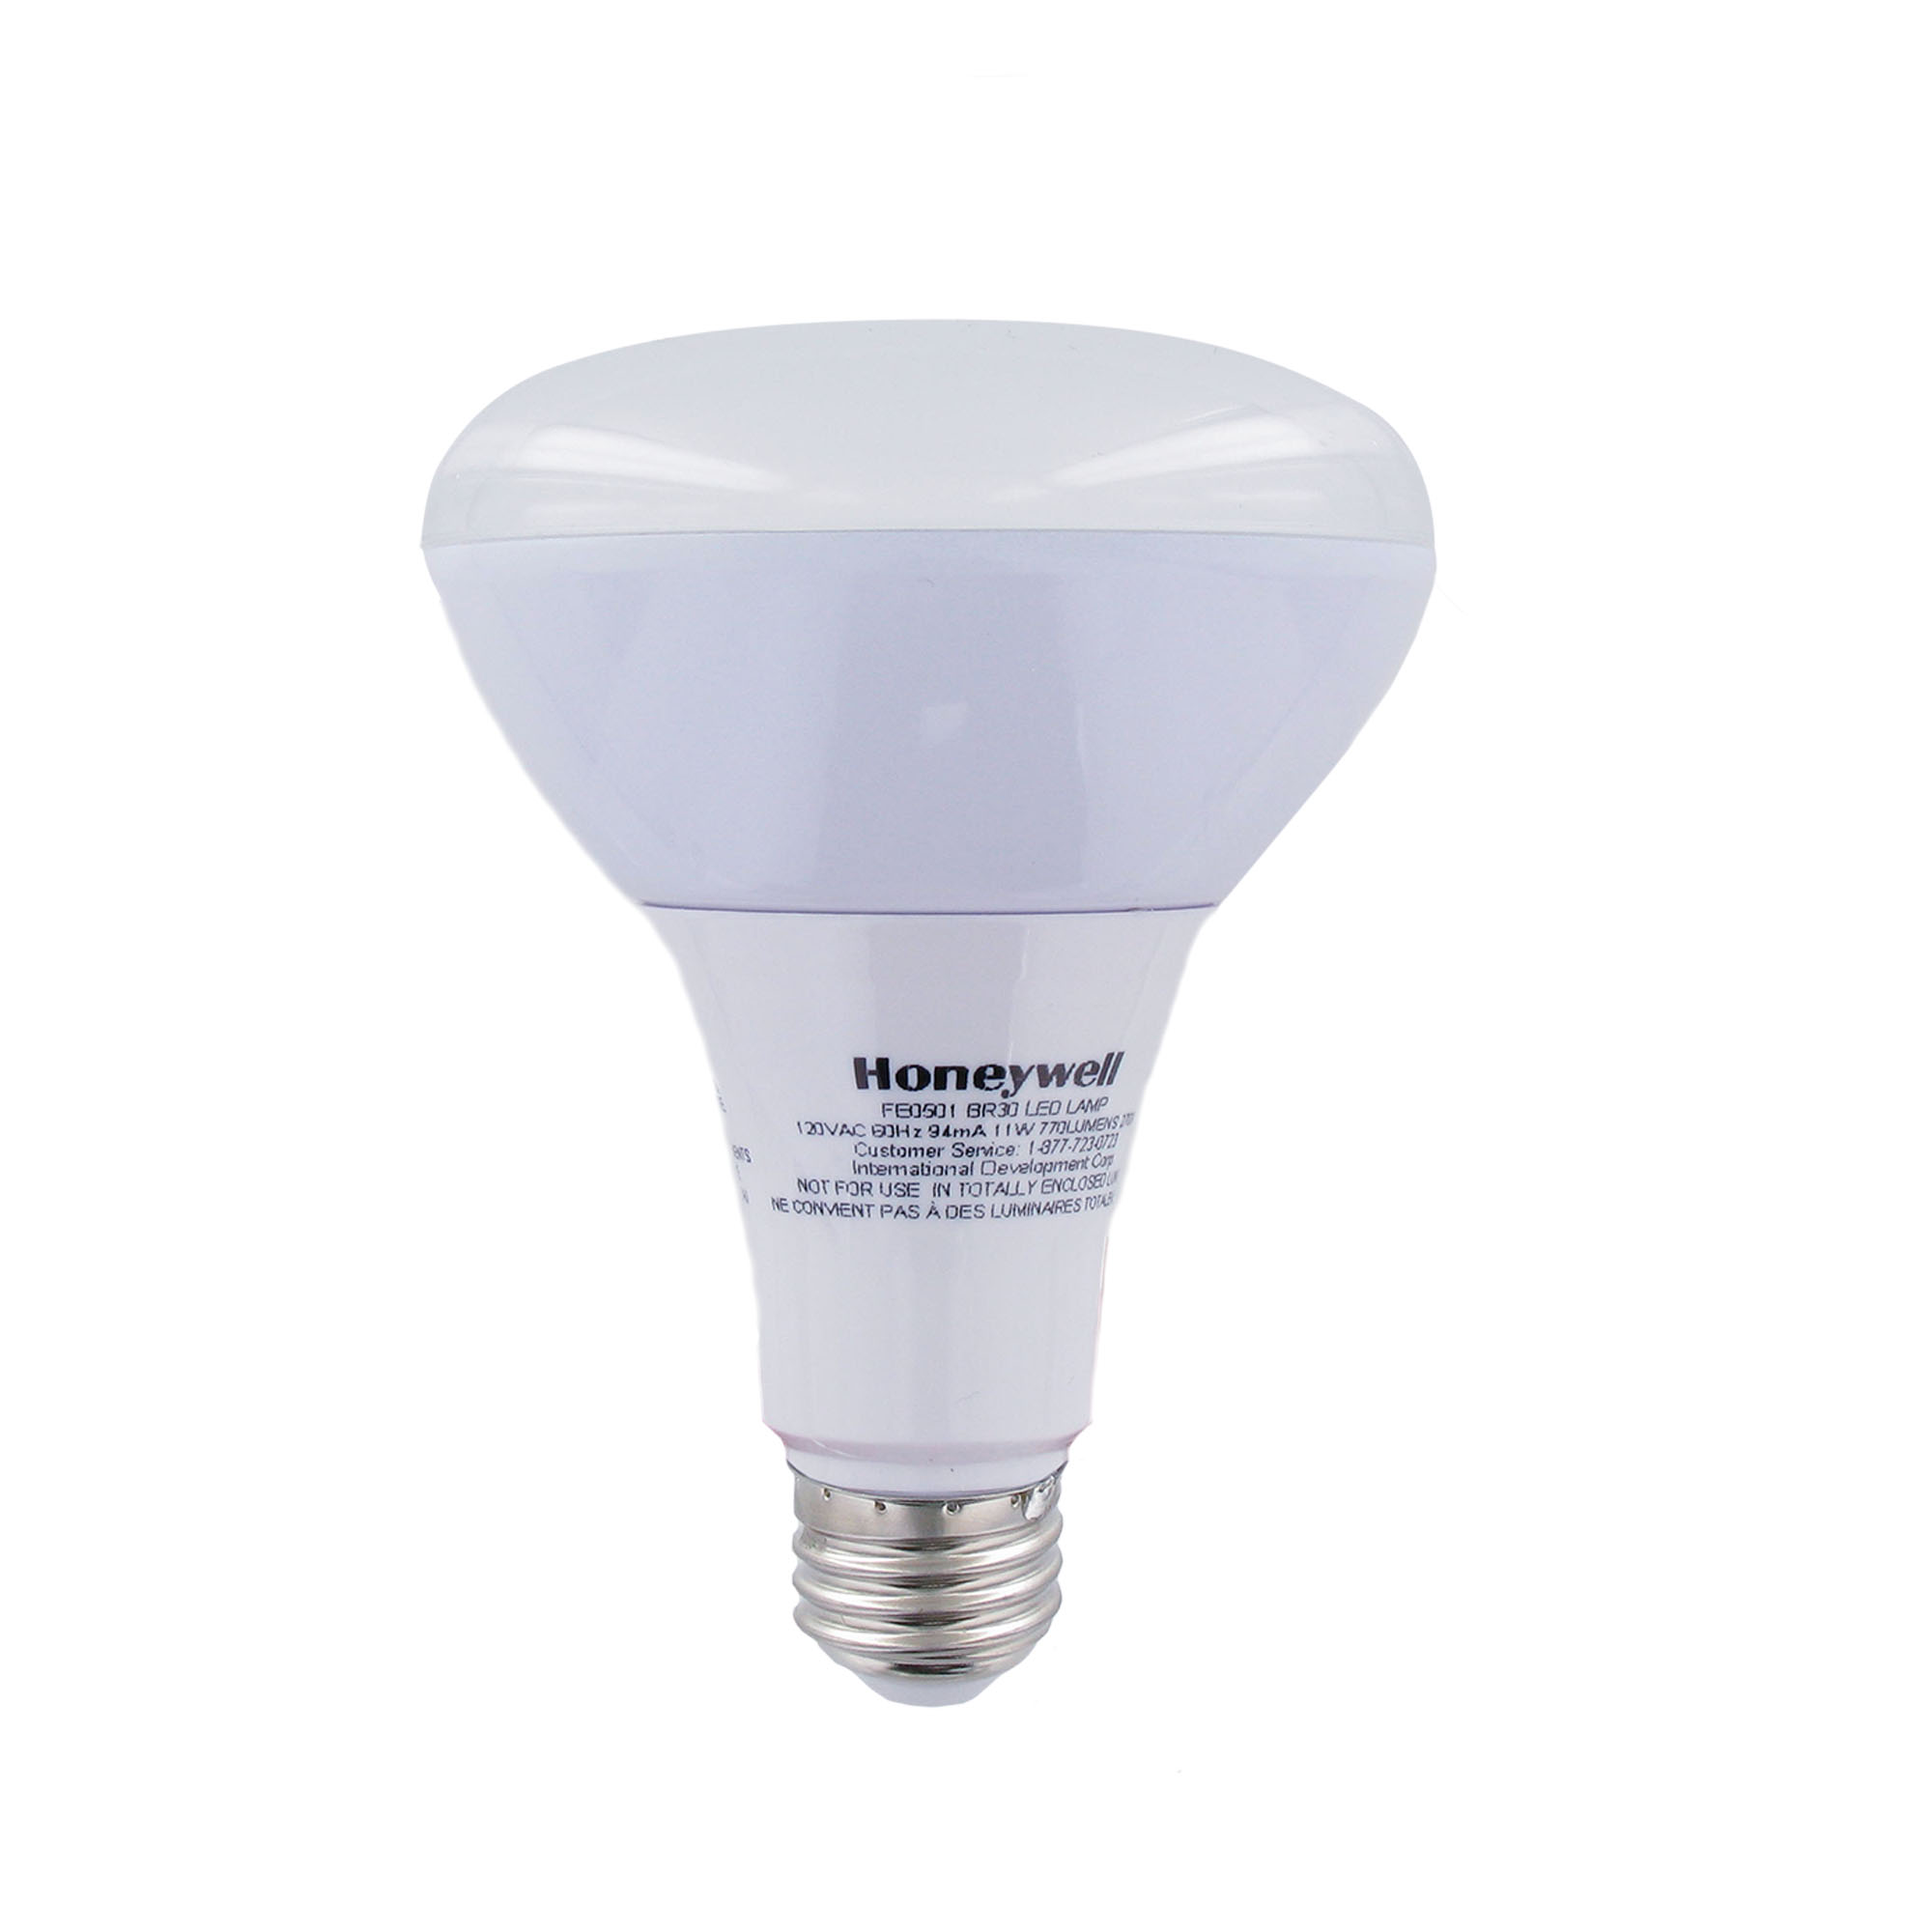 Ampoule E27 Led 100w Honeywell 65w Equivalent Br30 Dimmable Led Light Bulb 2 Pack Fe0501